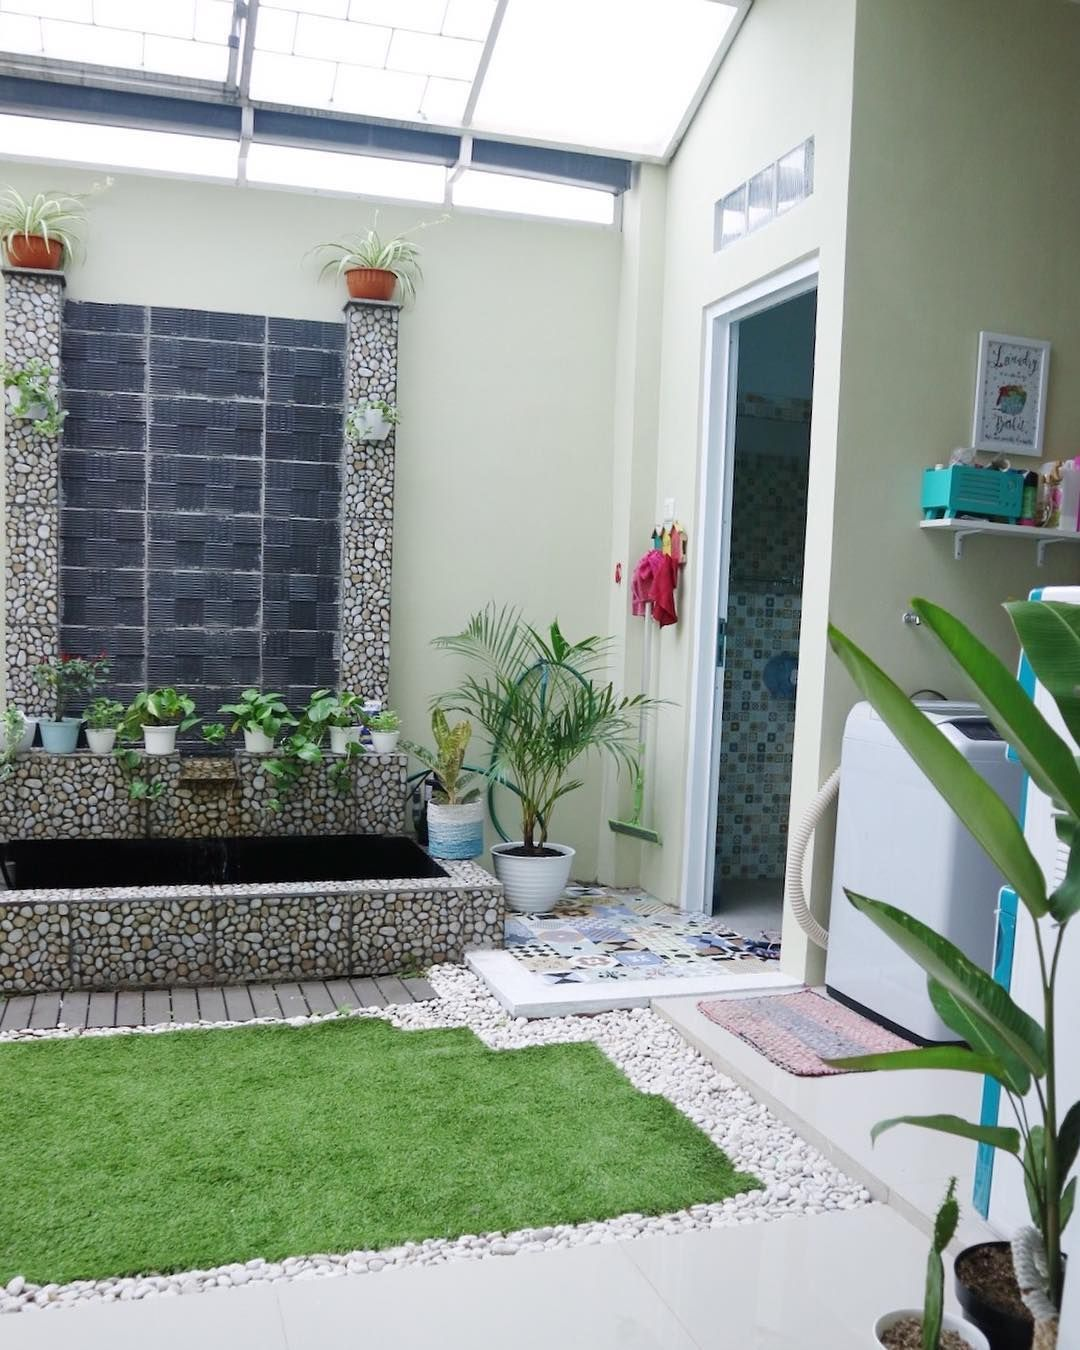 Image May Contain Plant Indoor And Outdoor Ide Halaman